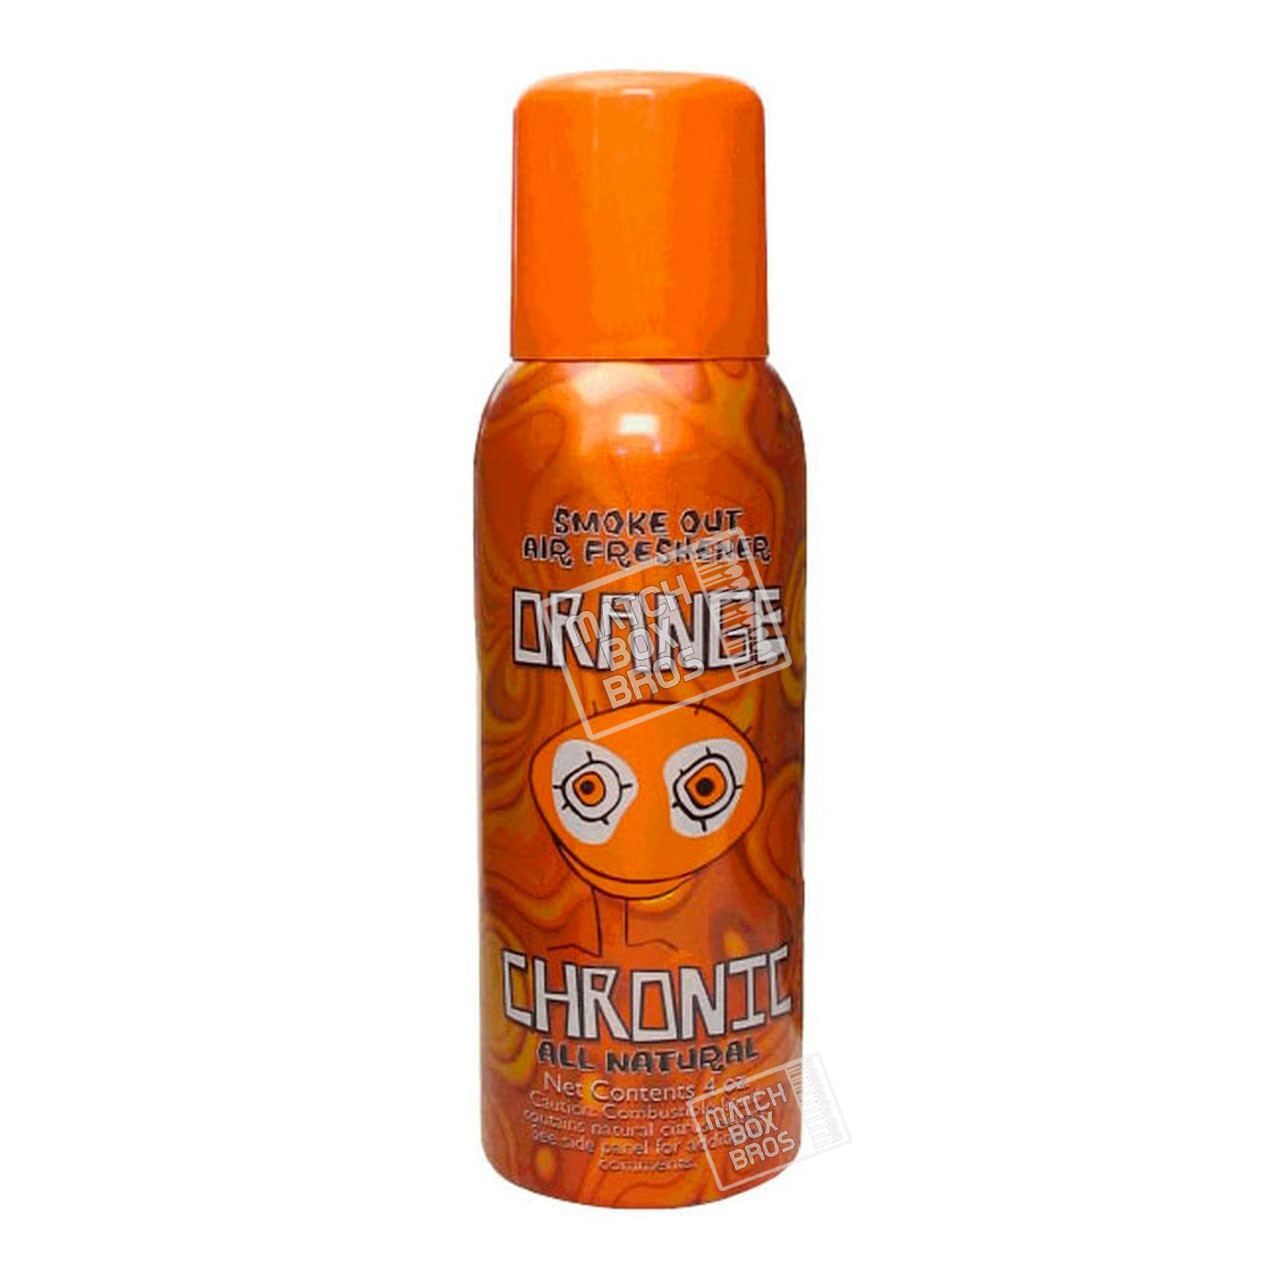 Orange Chronic Air Freshener [4oz]